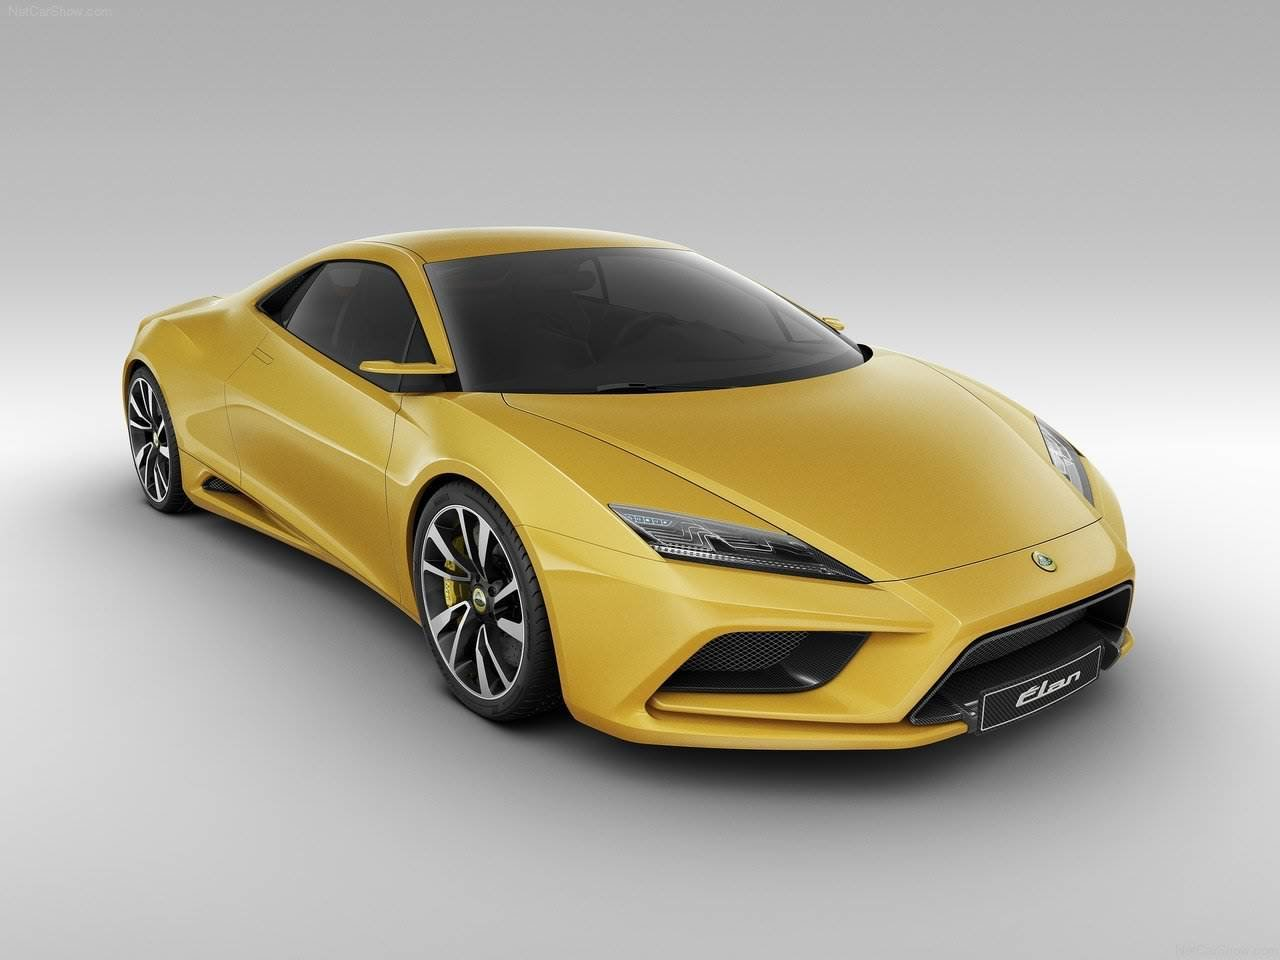 Latest 2010 Lotus Elan Concept Automobile Free Download